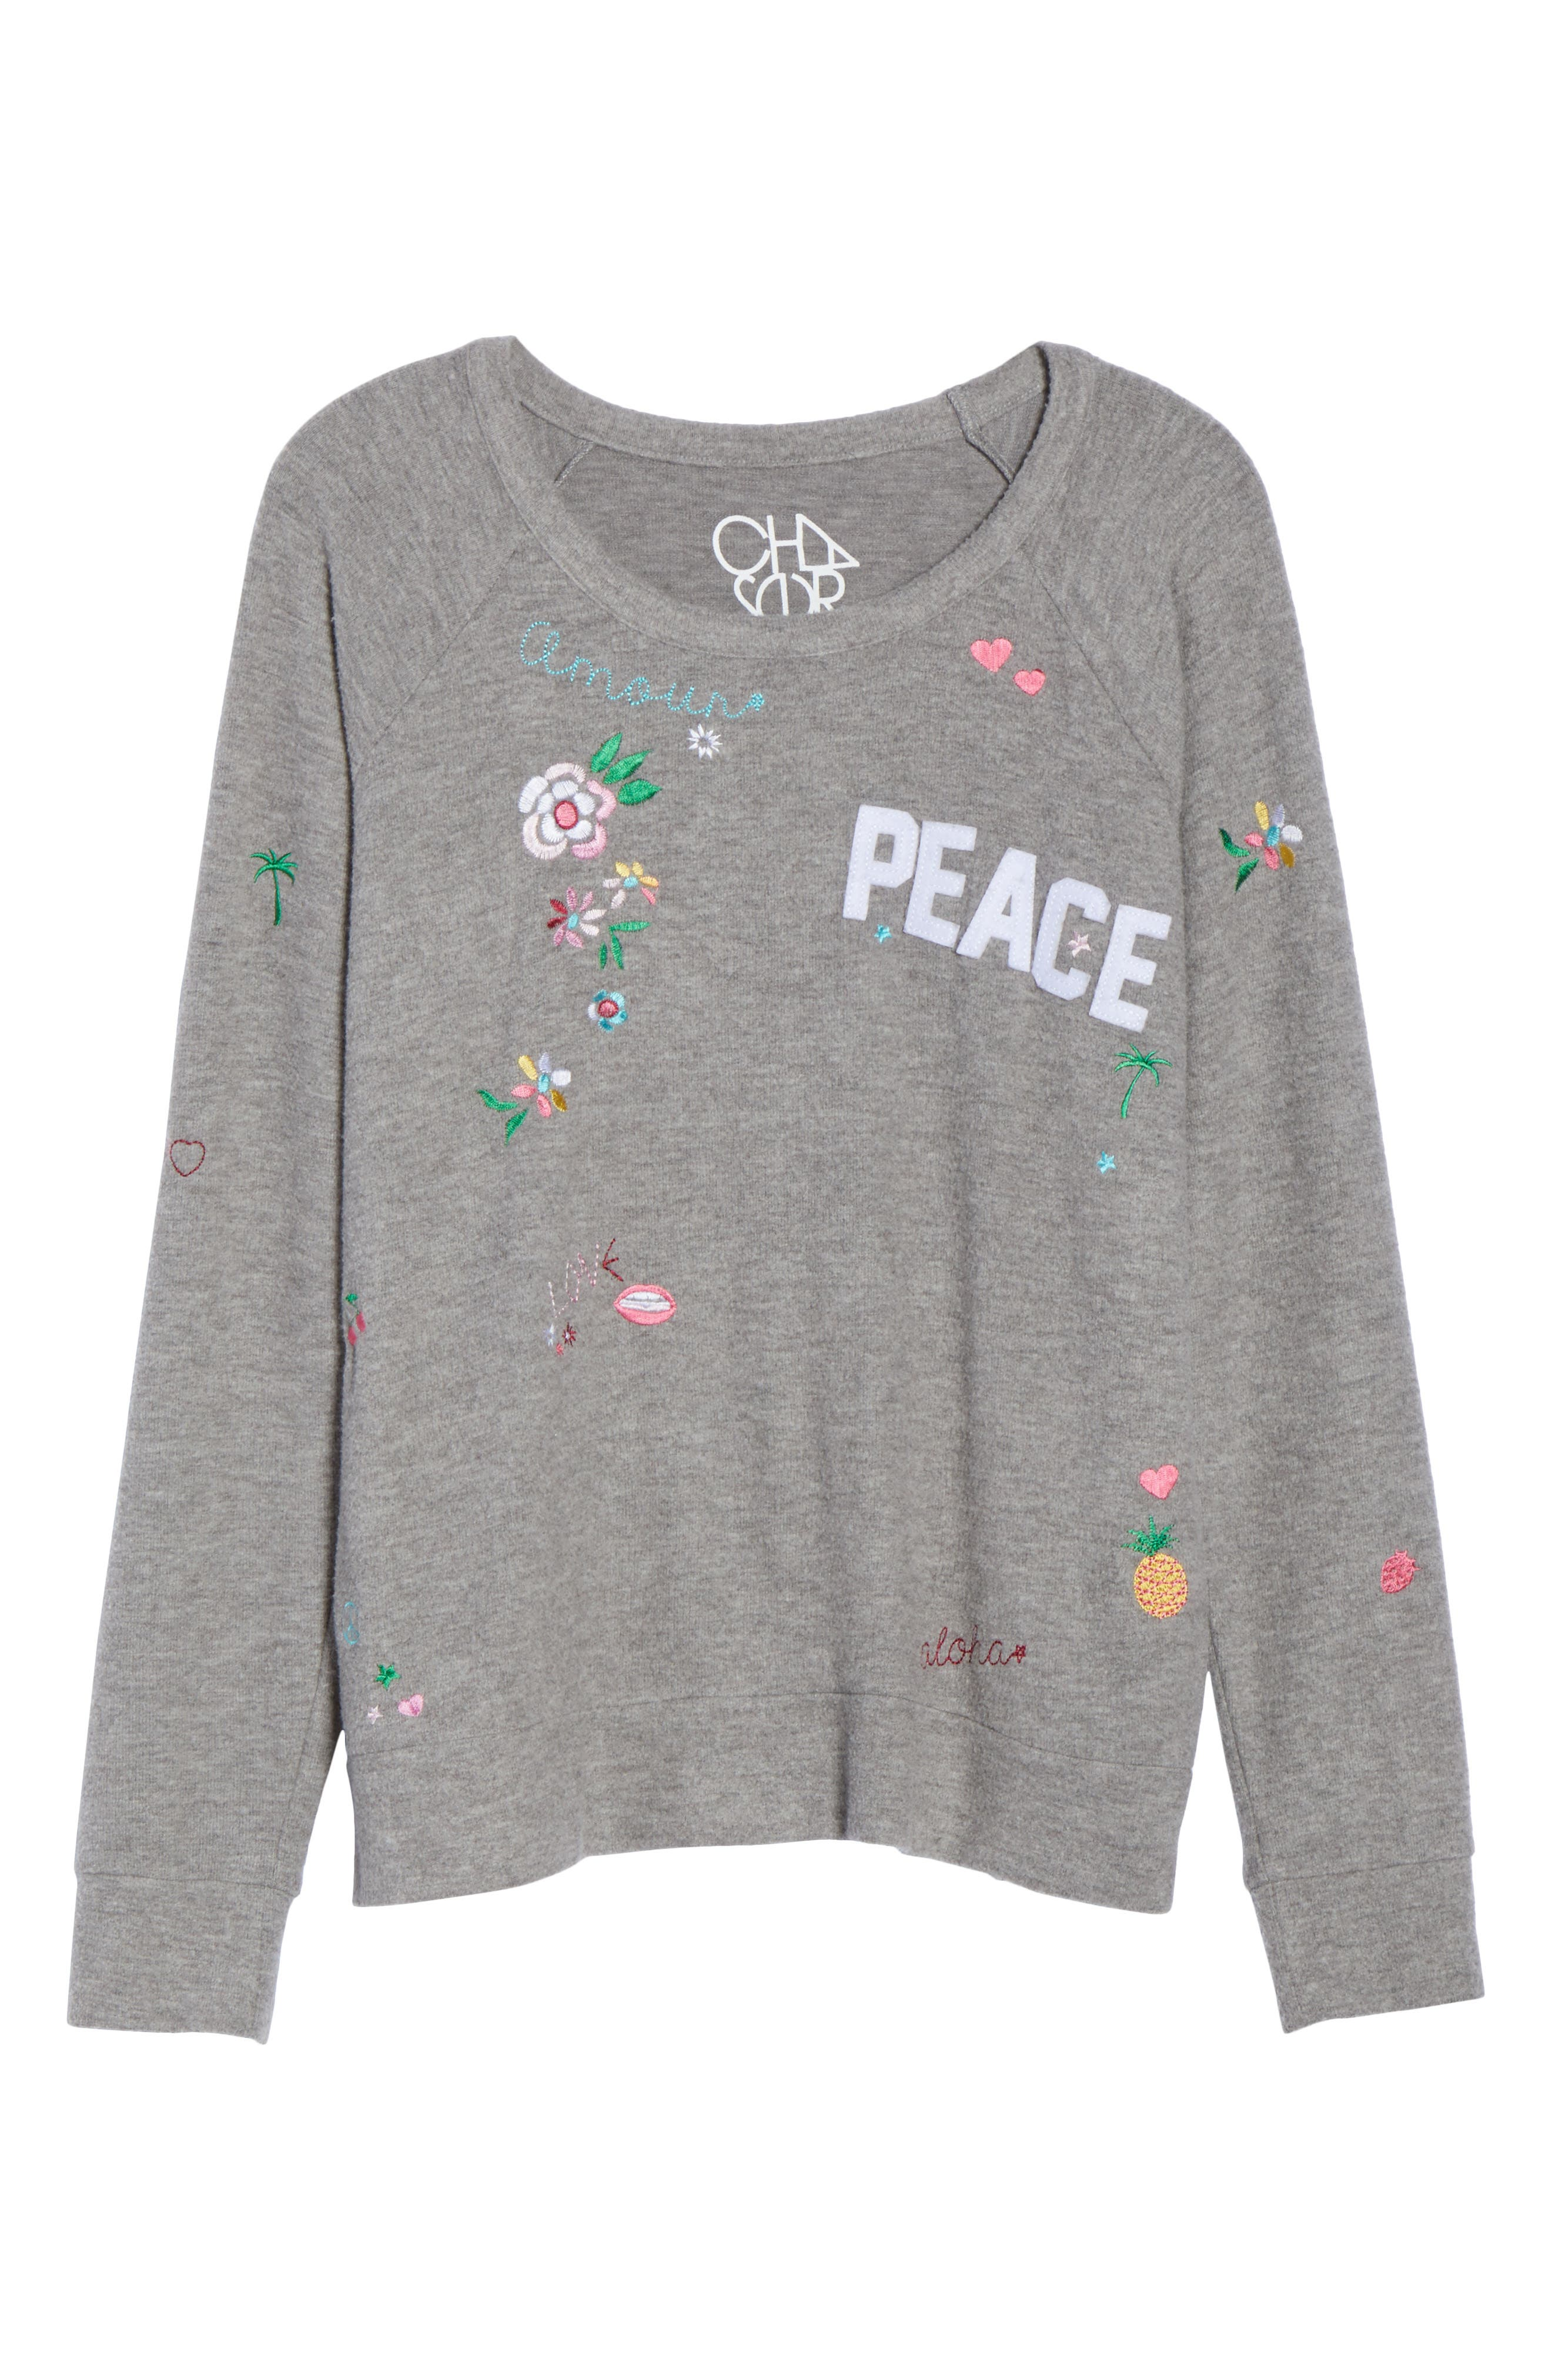 Patched Up Sweatshirt,                             Alternate thumbnail 6, color,                             039